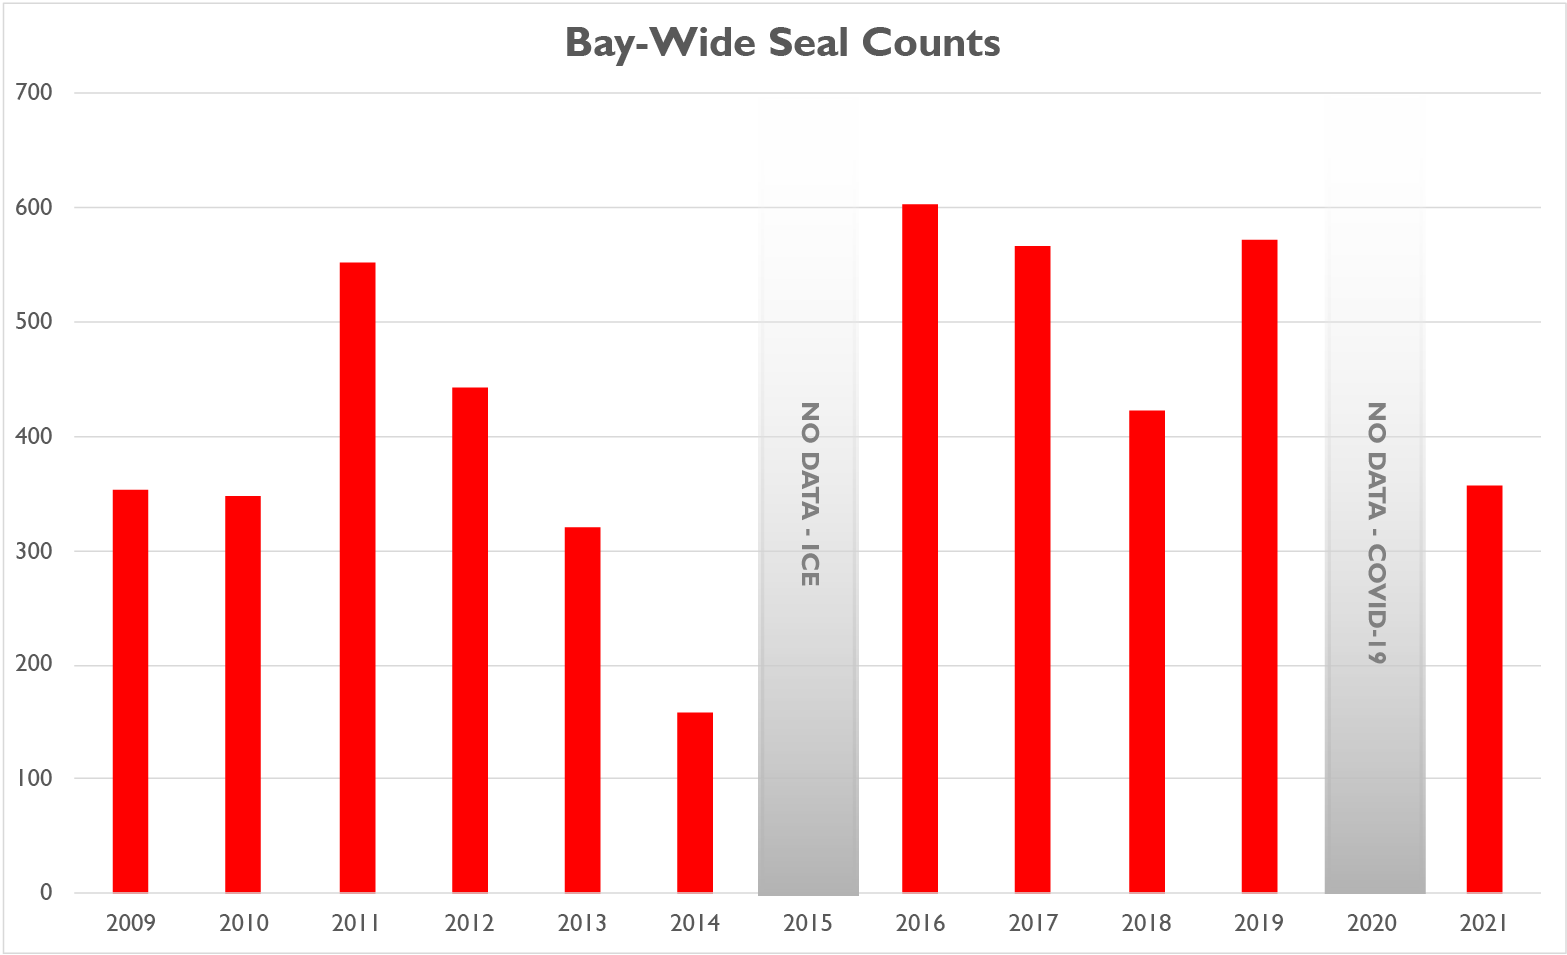 Bay-Wide Seal Count table, 200-9-2021